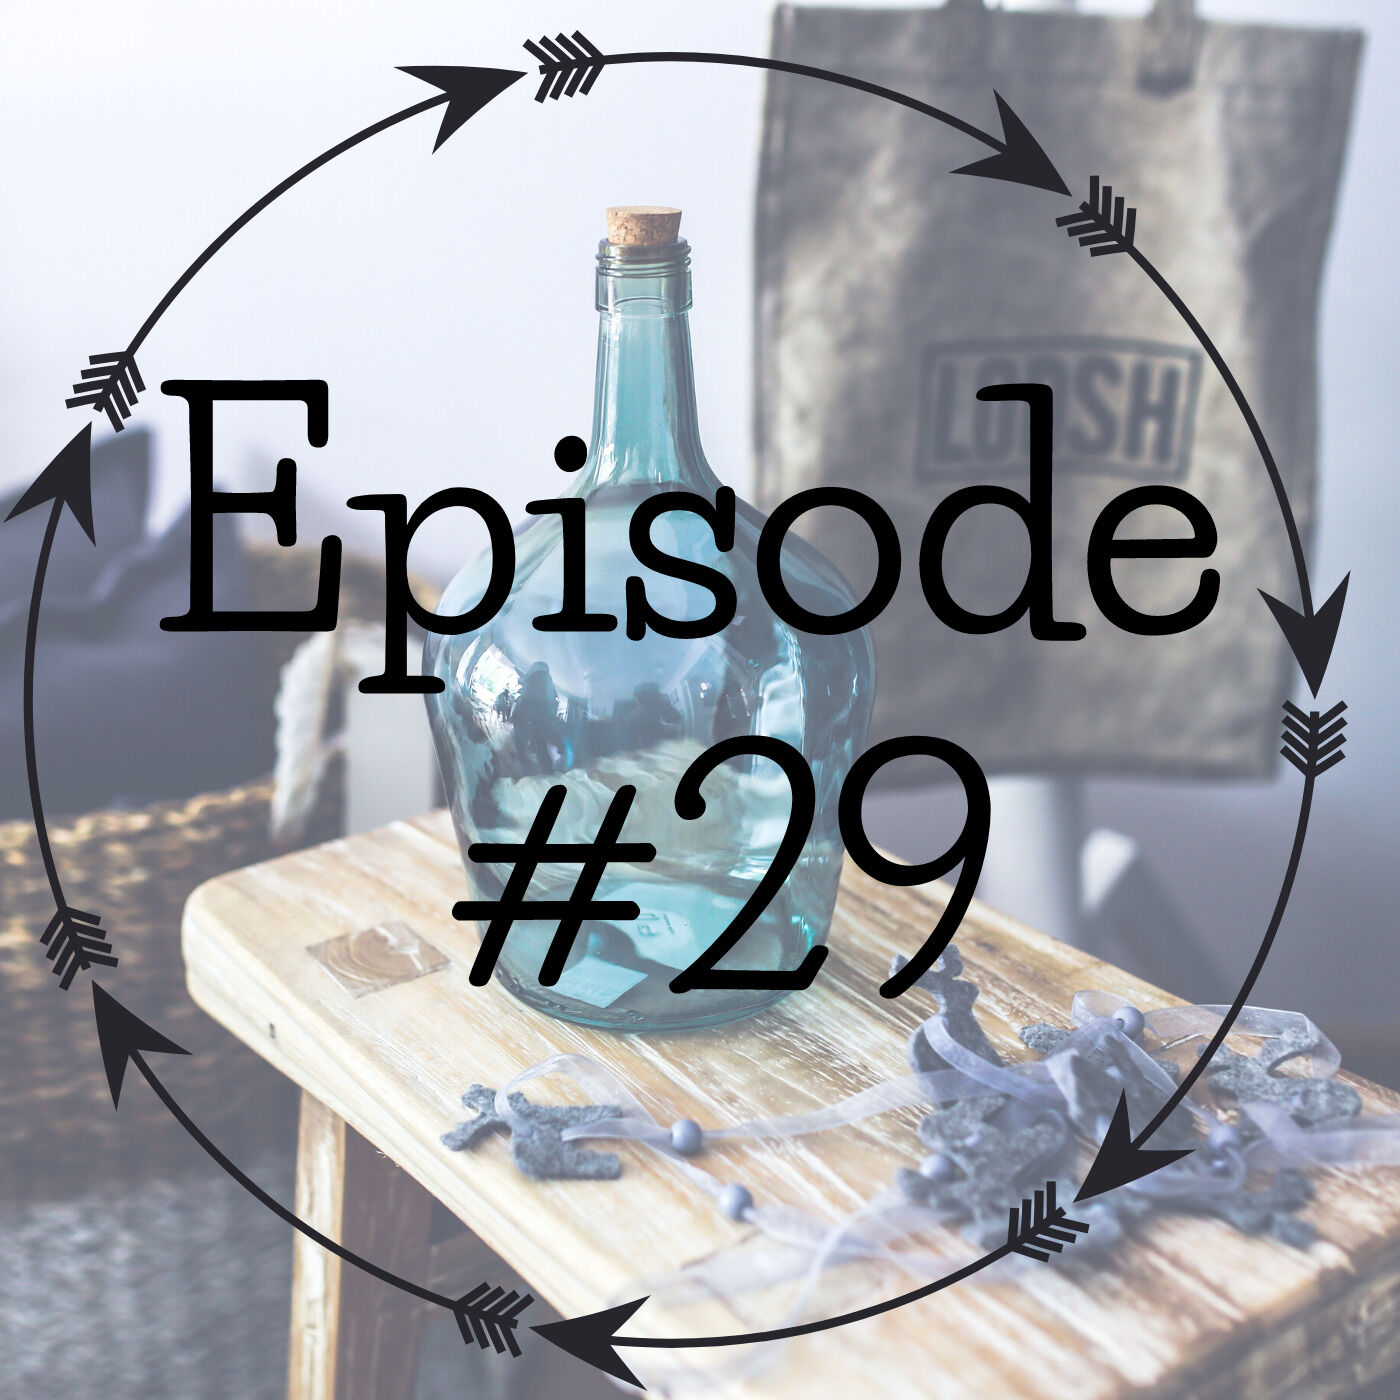 Episode #29: A dilemma about what to do if a midwife steps between the doula and her client.